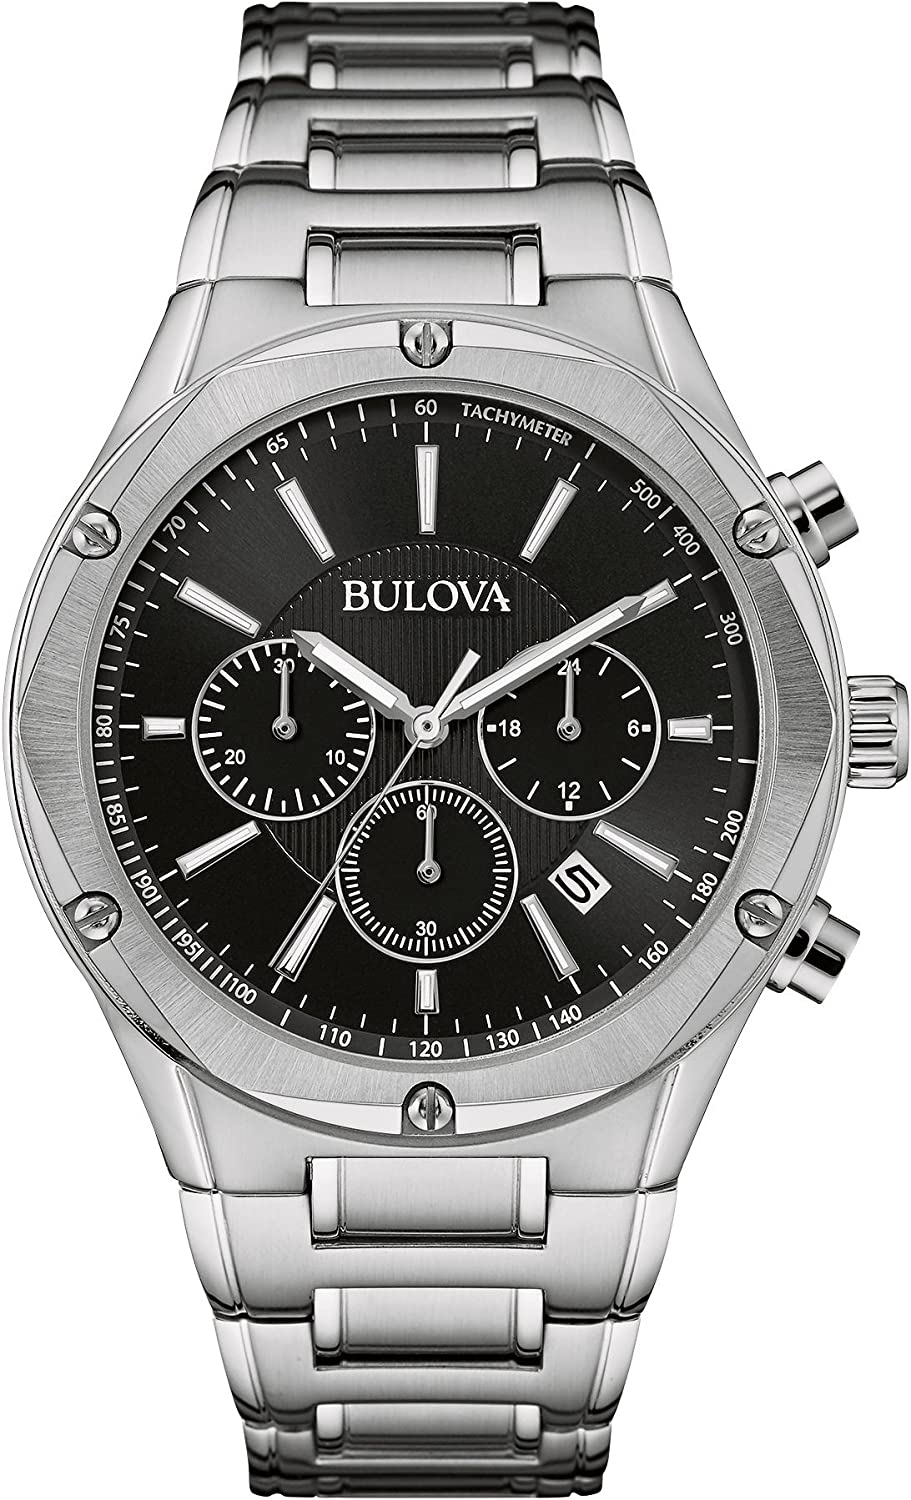 96B247 Special Sale special price price for a limited time Bulova Wristwatch